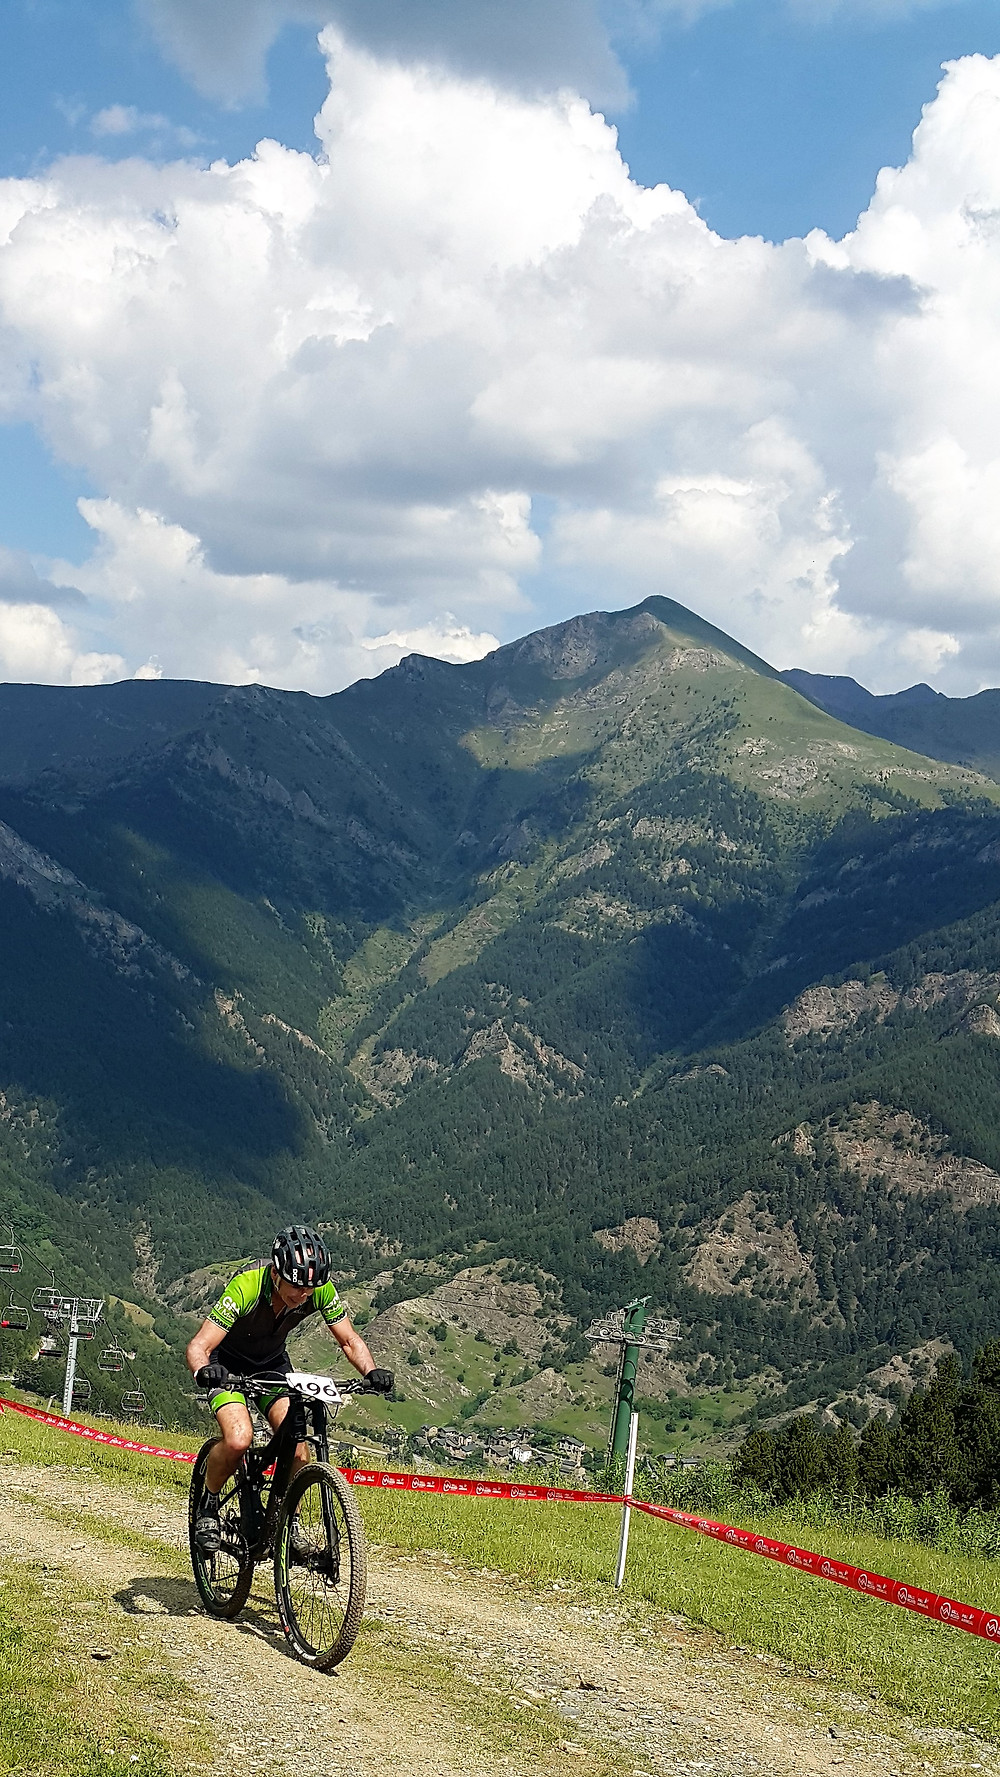 An example of intense, brutal exercise at high altitude